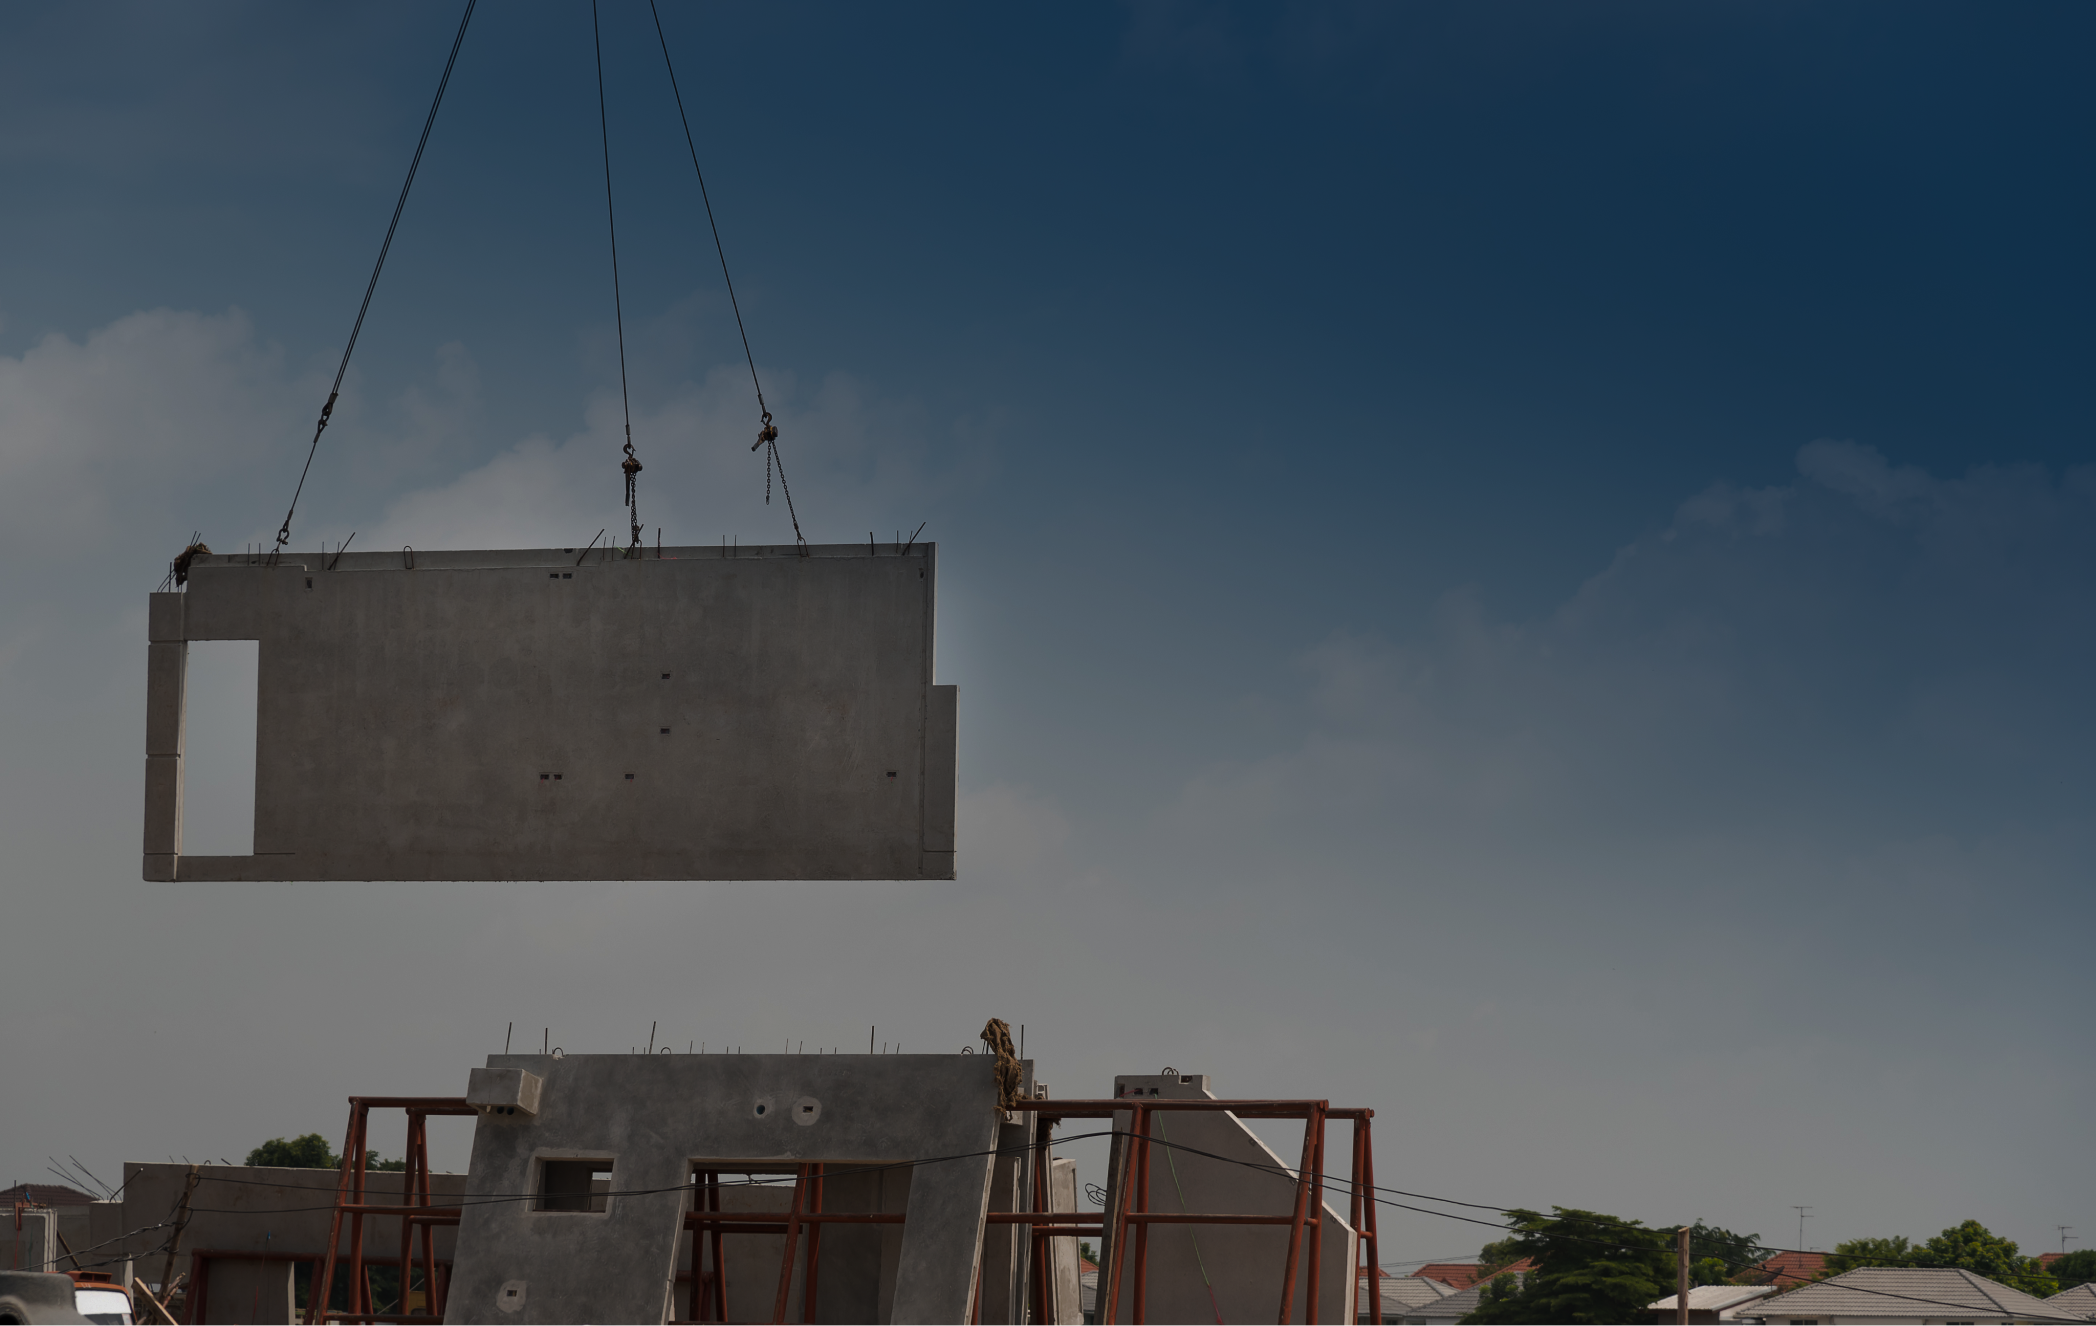 The future is prefabricated: Prefabrication and modular construction